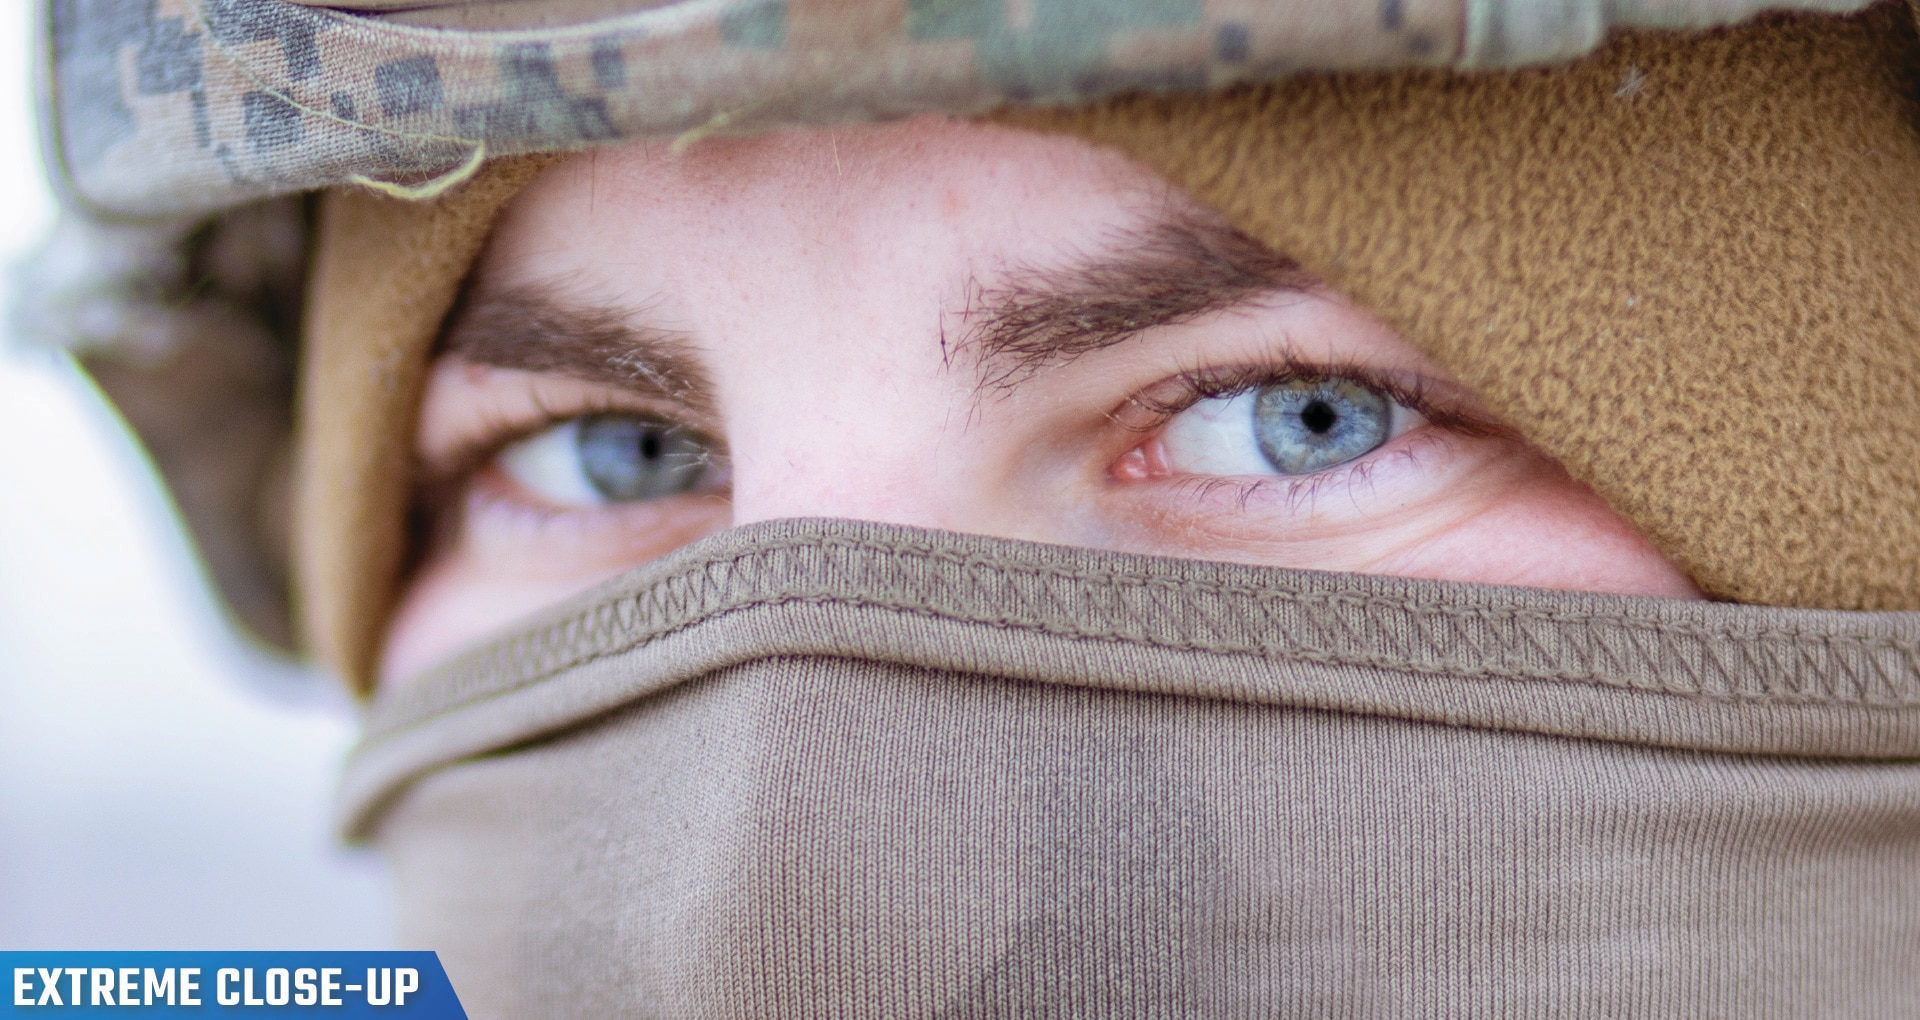 Photo of U.S. Marines Corps Cpl. wearing a helmet and mask cover eyes.